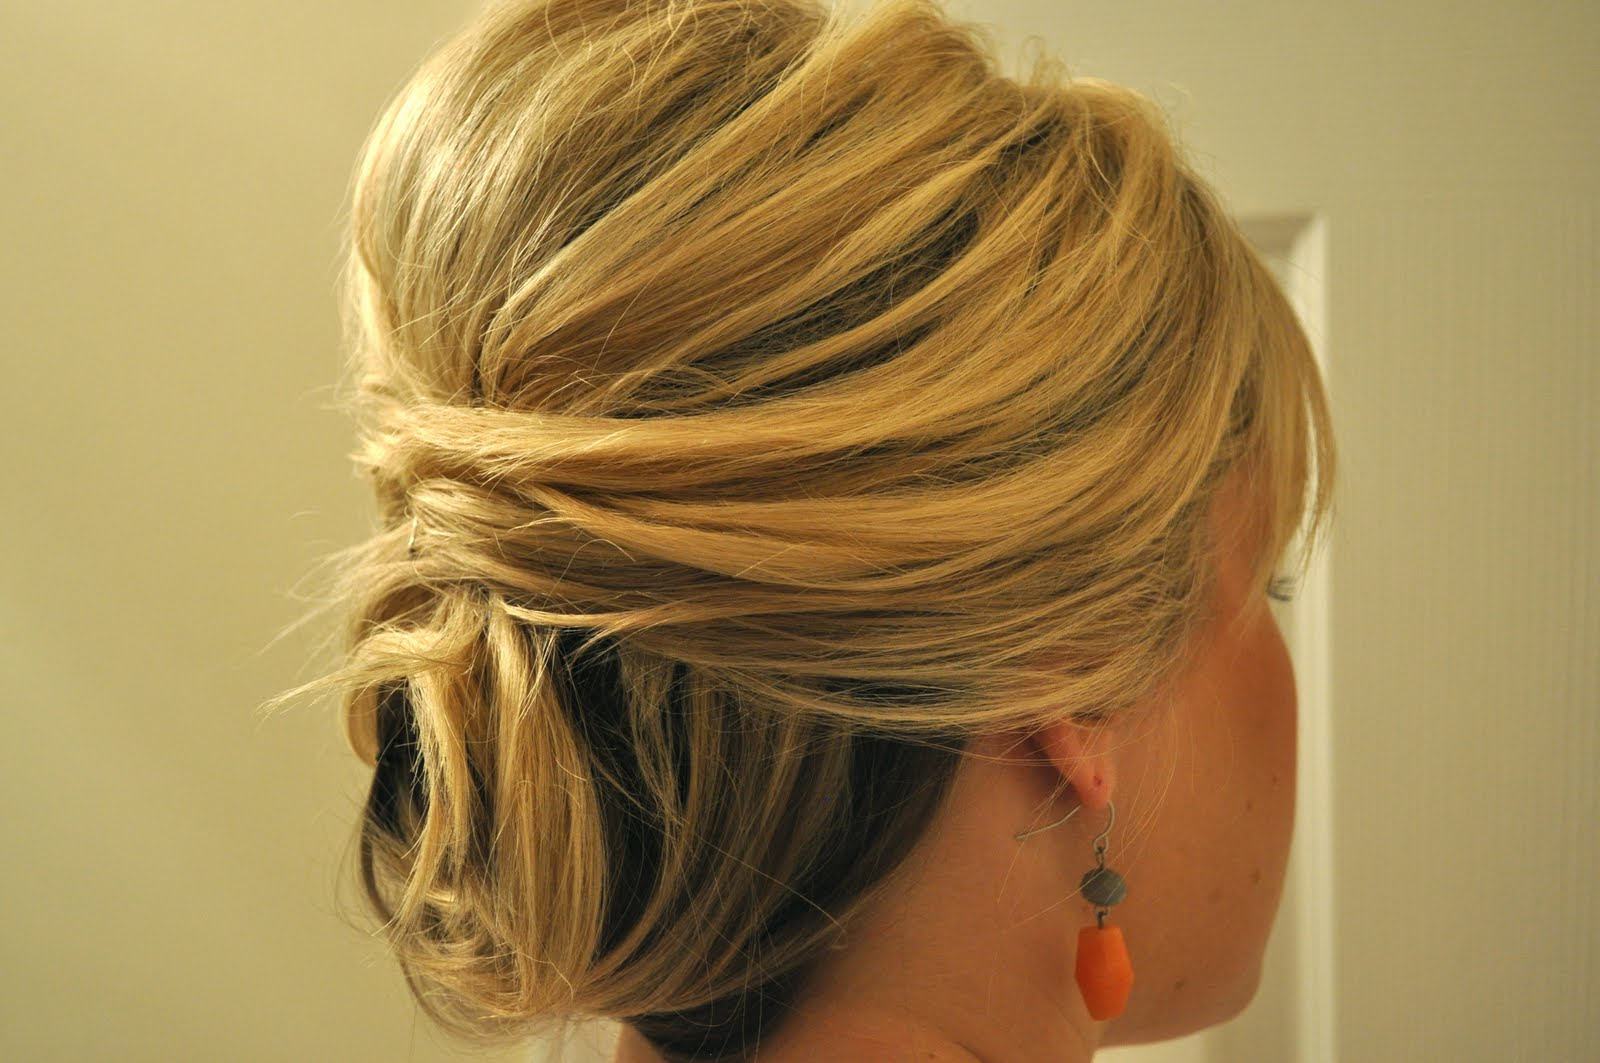 Hairstyles For Short Hair Upto Shoulders : updo that anyone can do! It helps to have hair approximately shoulder ...